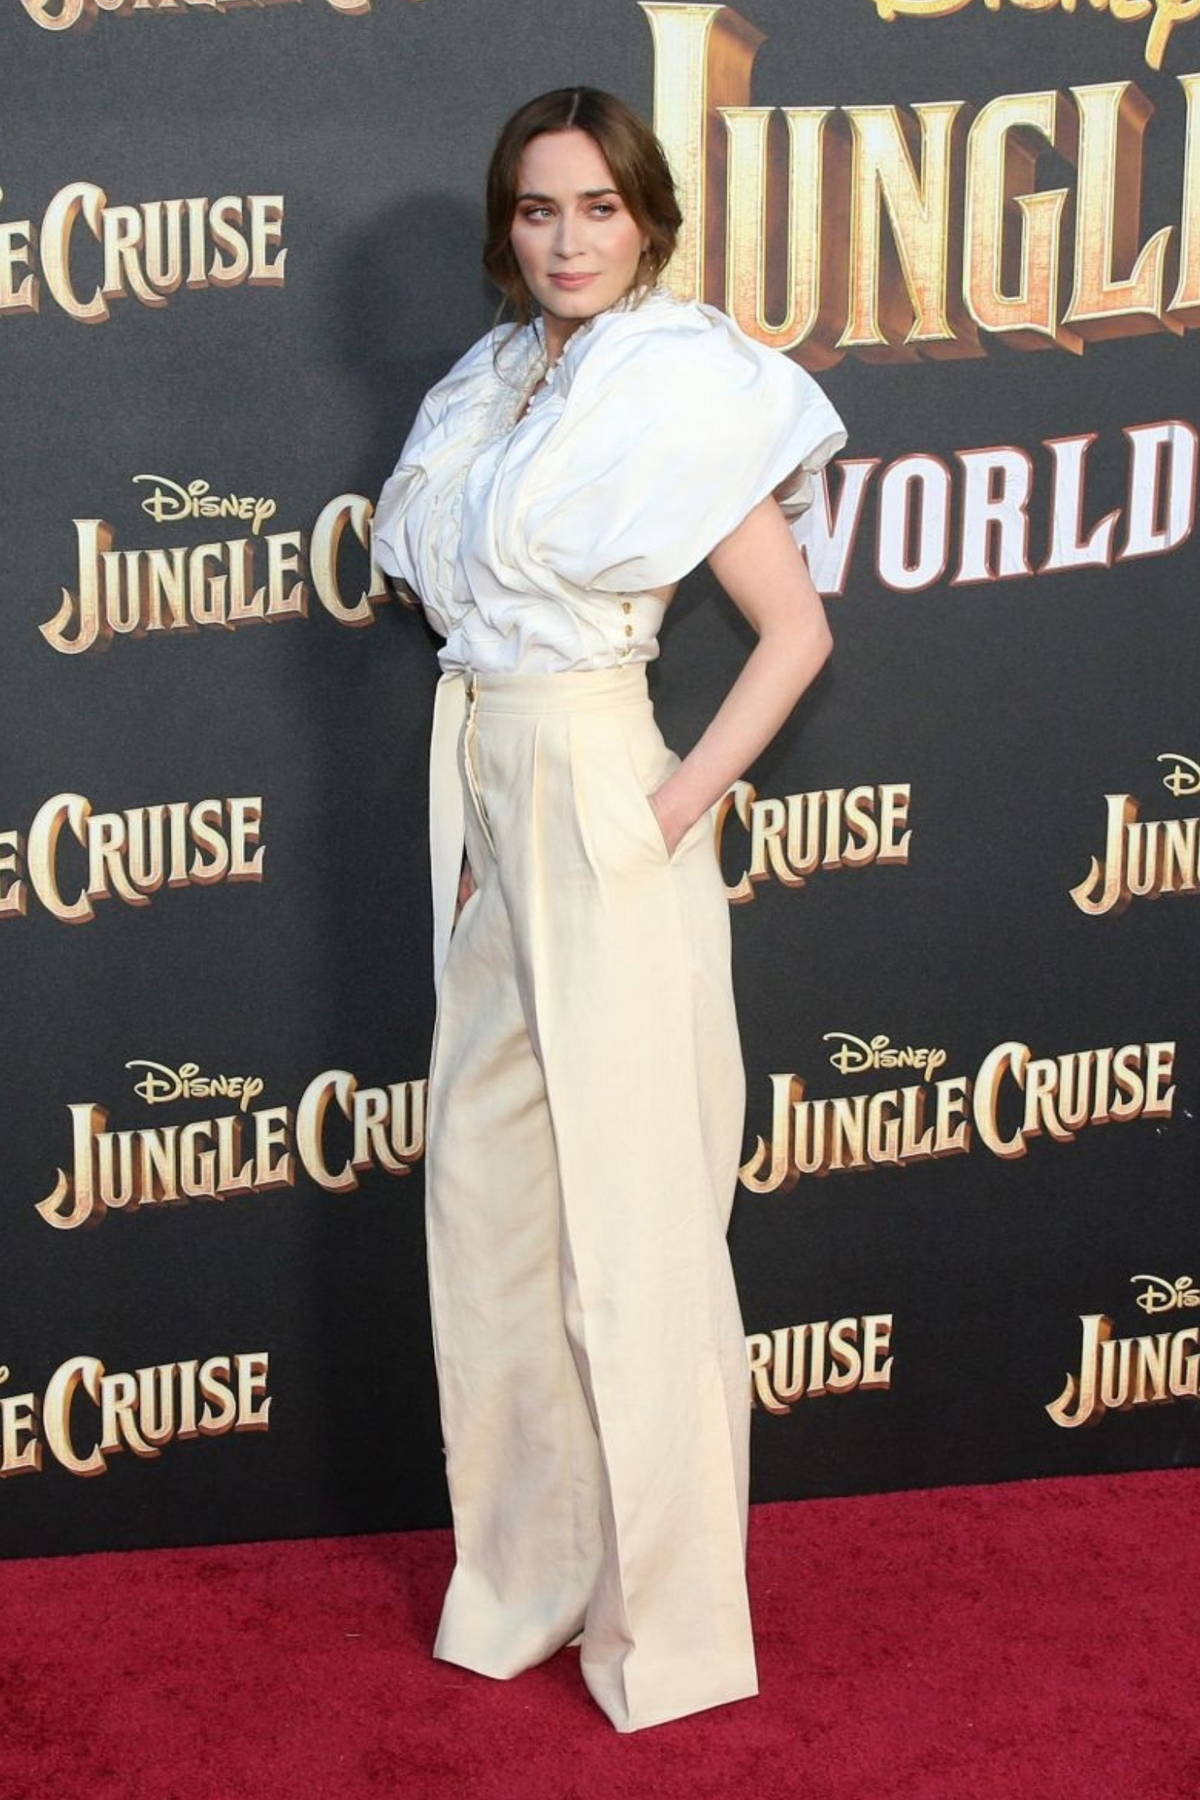 Emily Blunt attends the World Premiere Of Disney's 'Jungle Cruise' at Disneyland in Anaheim, California